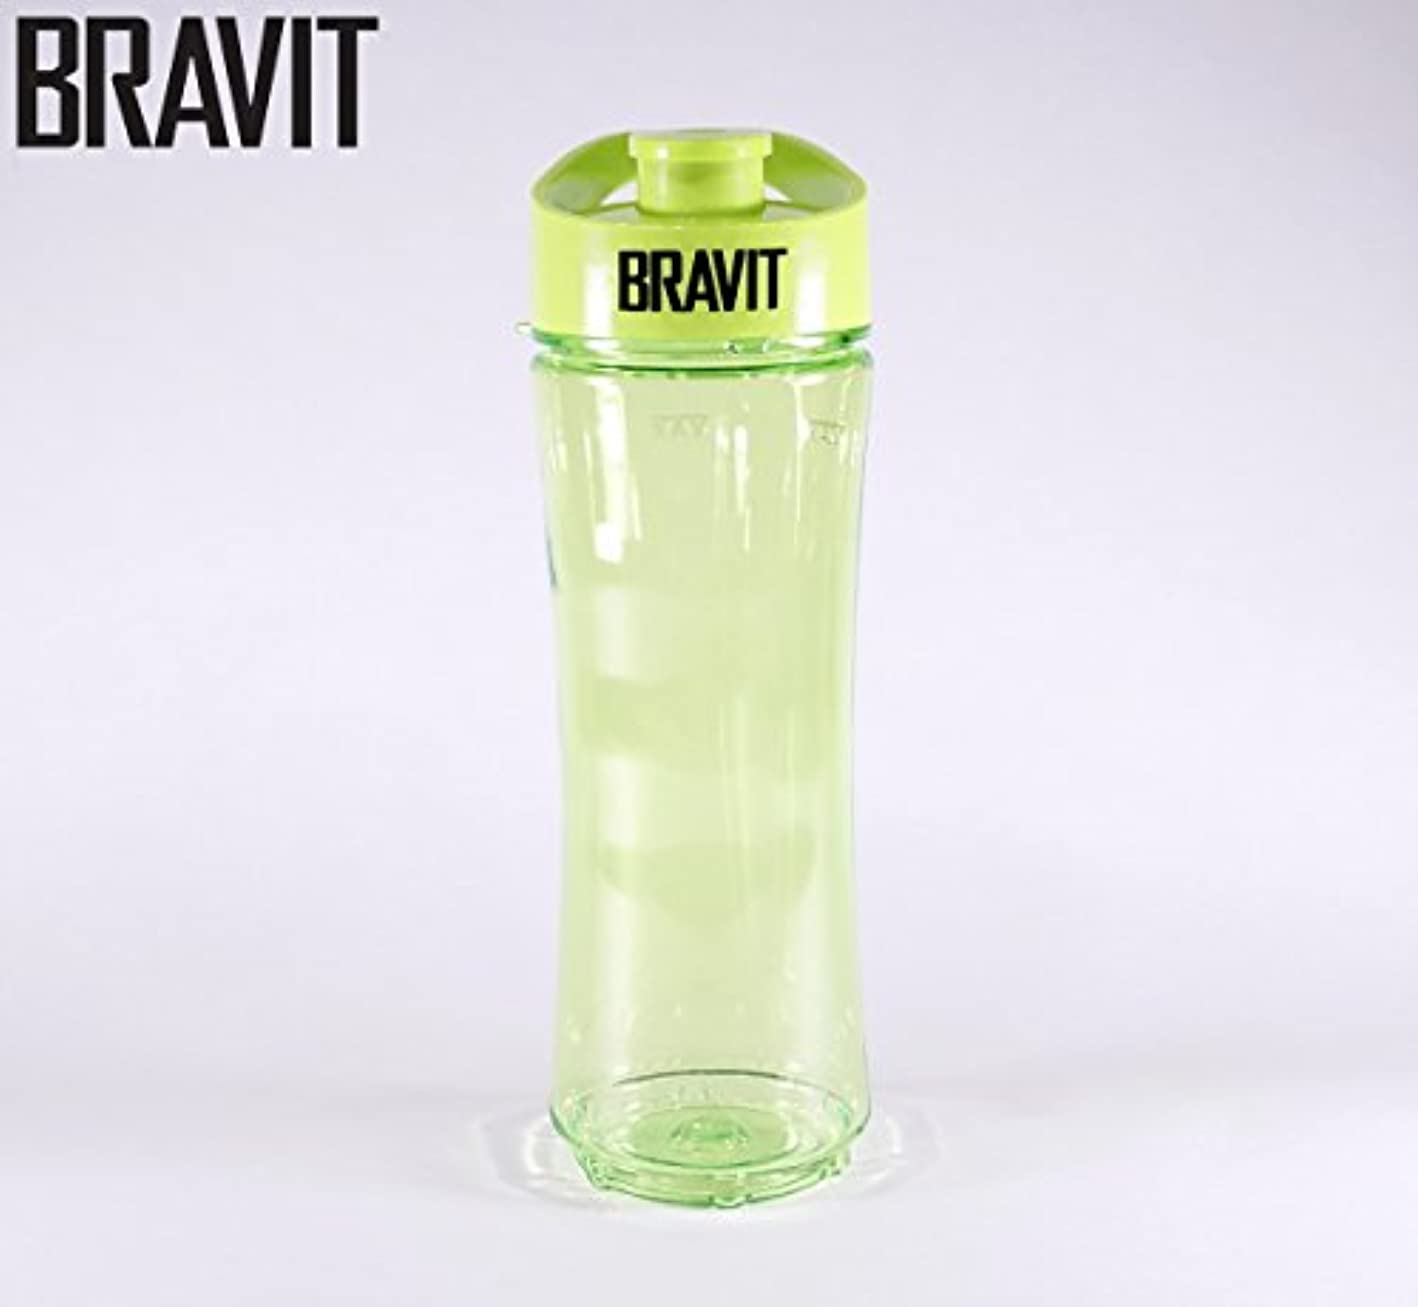 典型的なボイラーケニアBRAVIT Personal Sports Bottle, Smoothie, Shake Maker with Travel Lead for BRAVIT Personal Sports Blender by BRAVIT